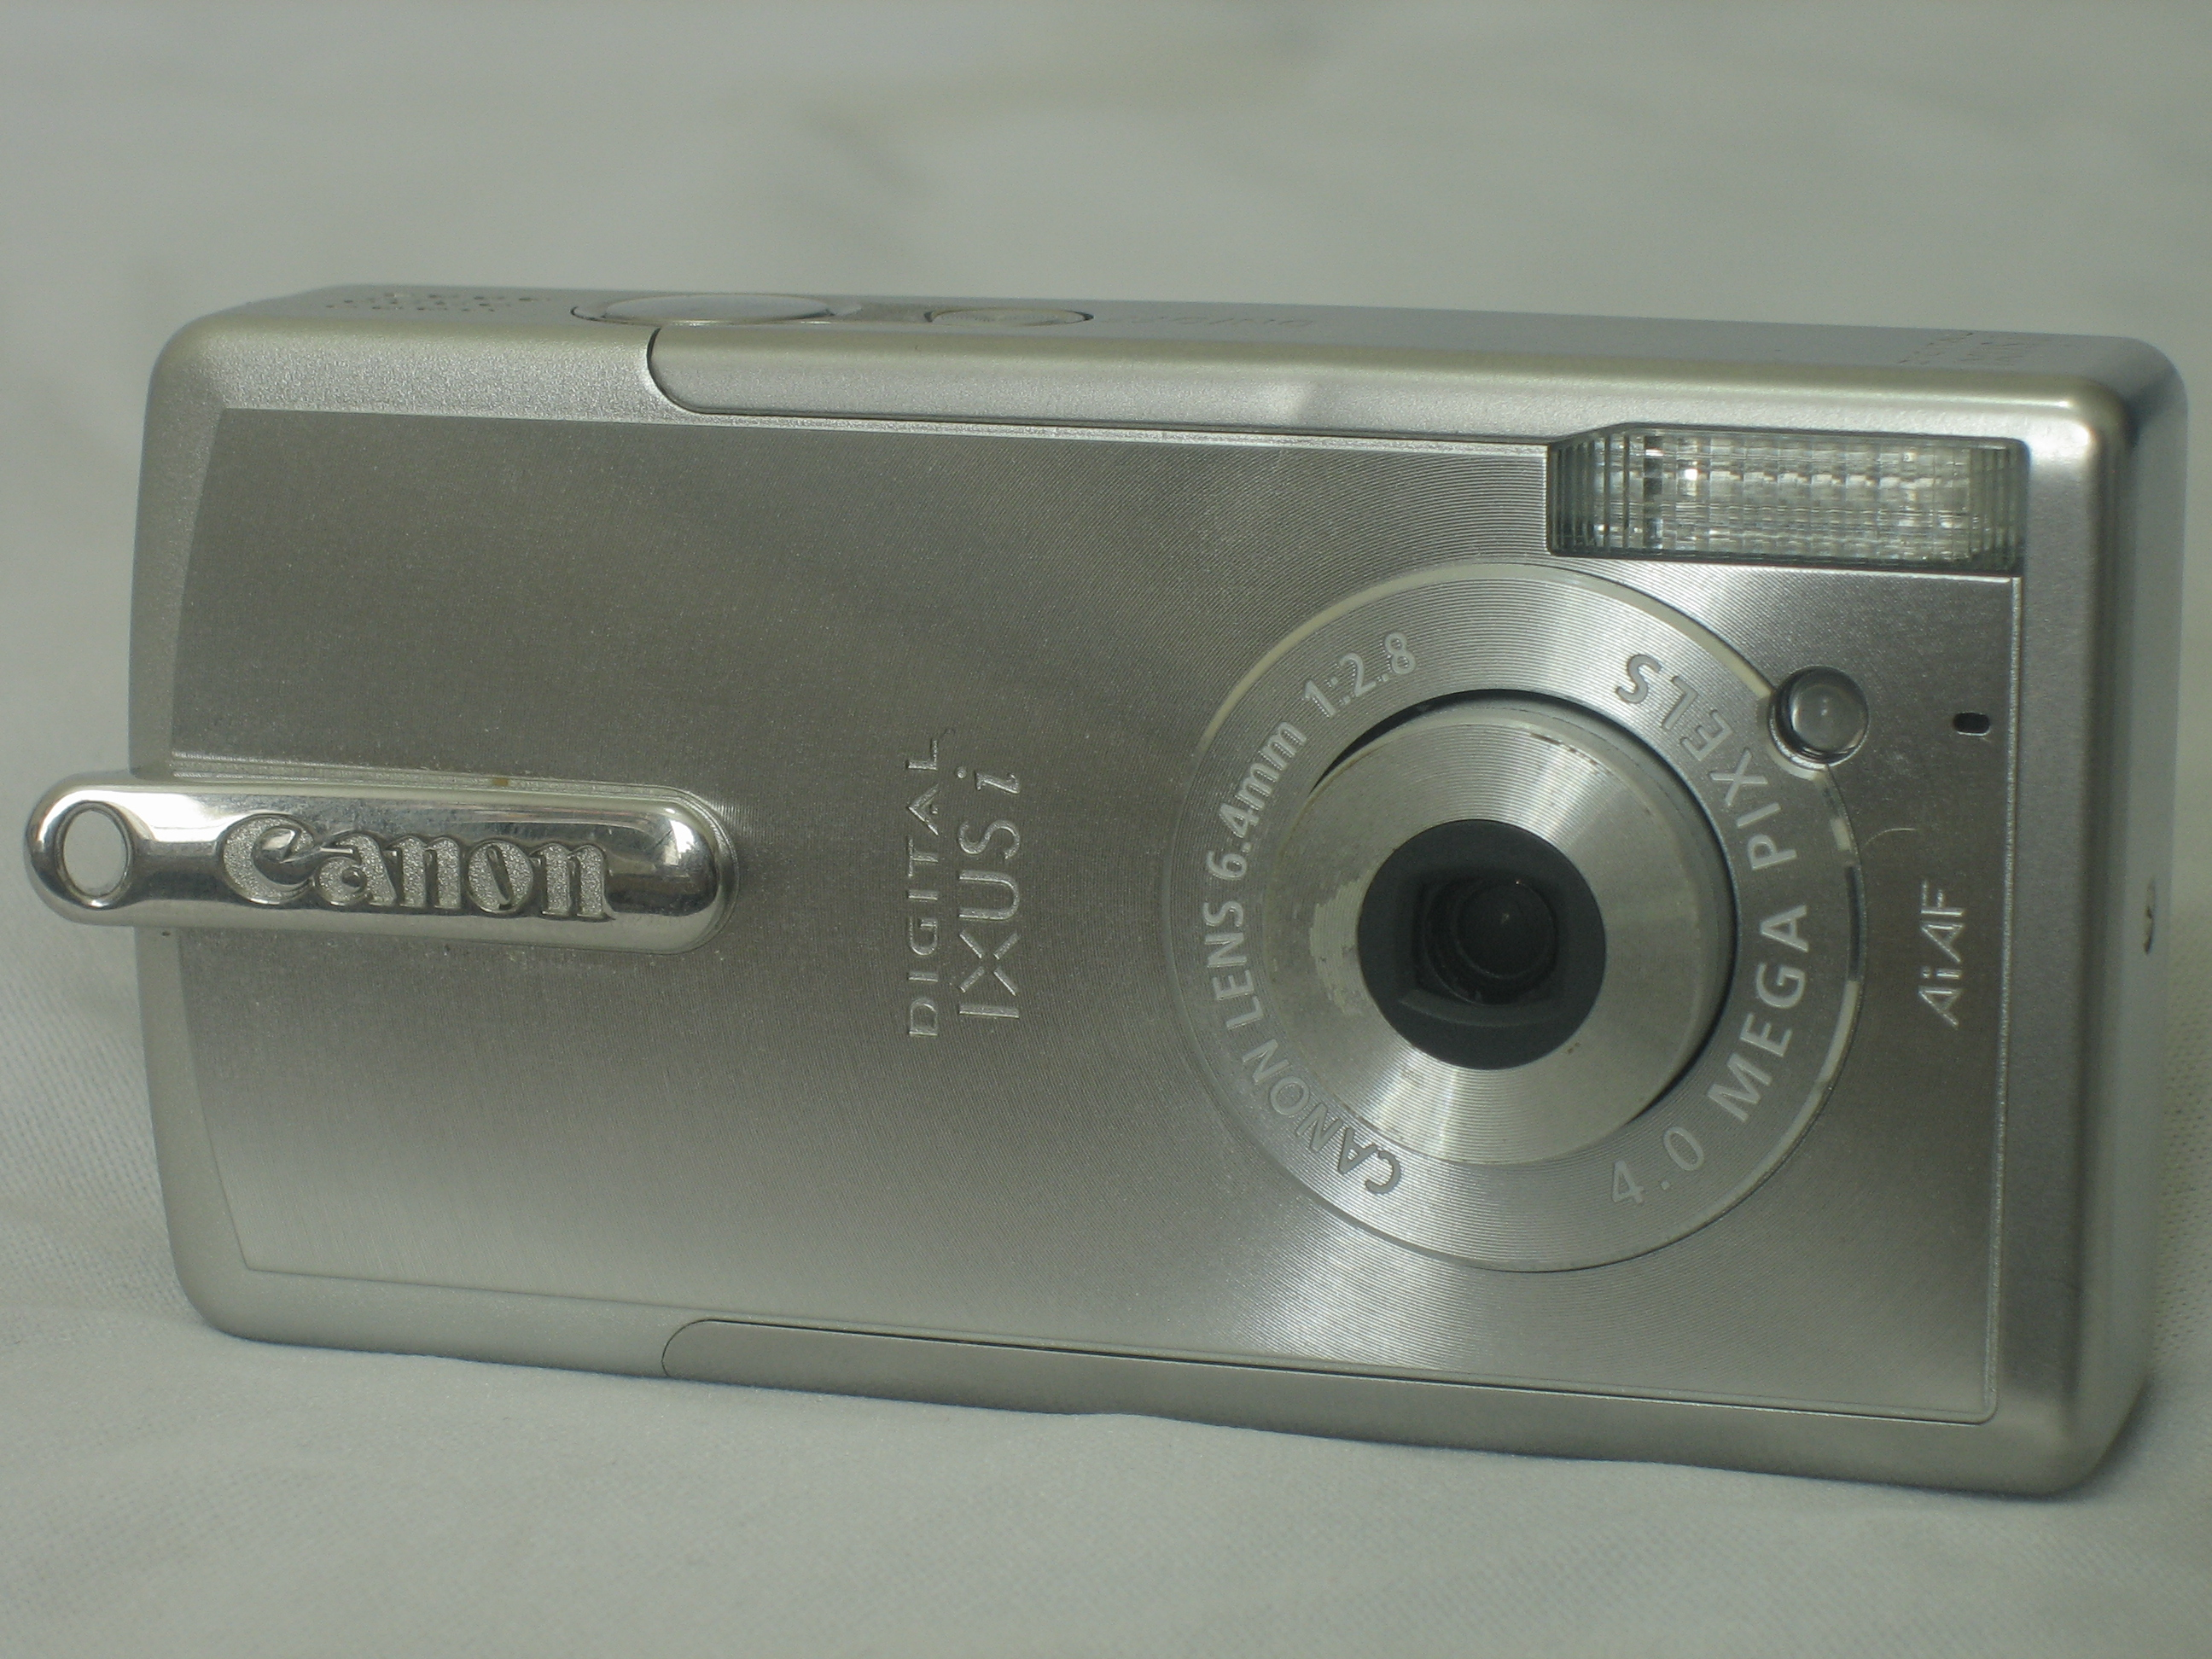 file canon digital ixus i silver front jpg wikimedia commons rh commons wikimedia org Canon T3i Manual canon pc 1060 service manual